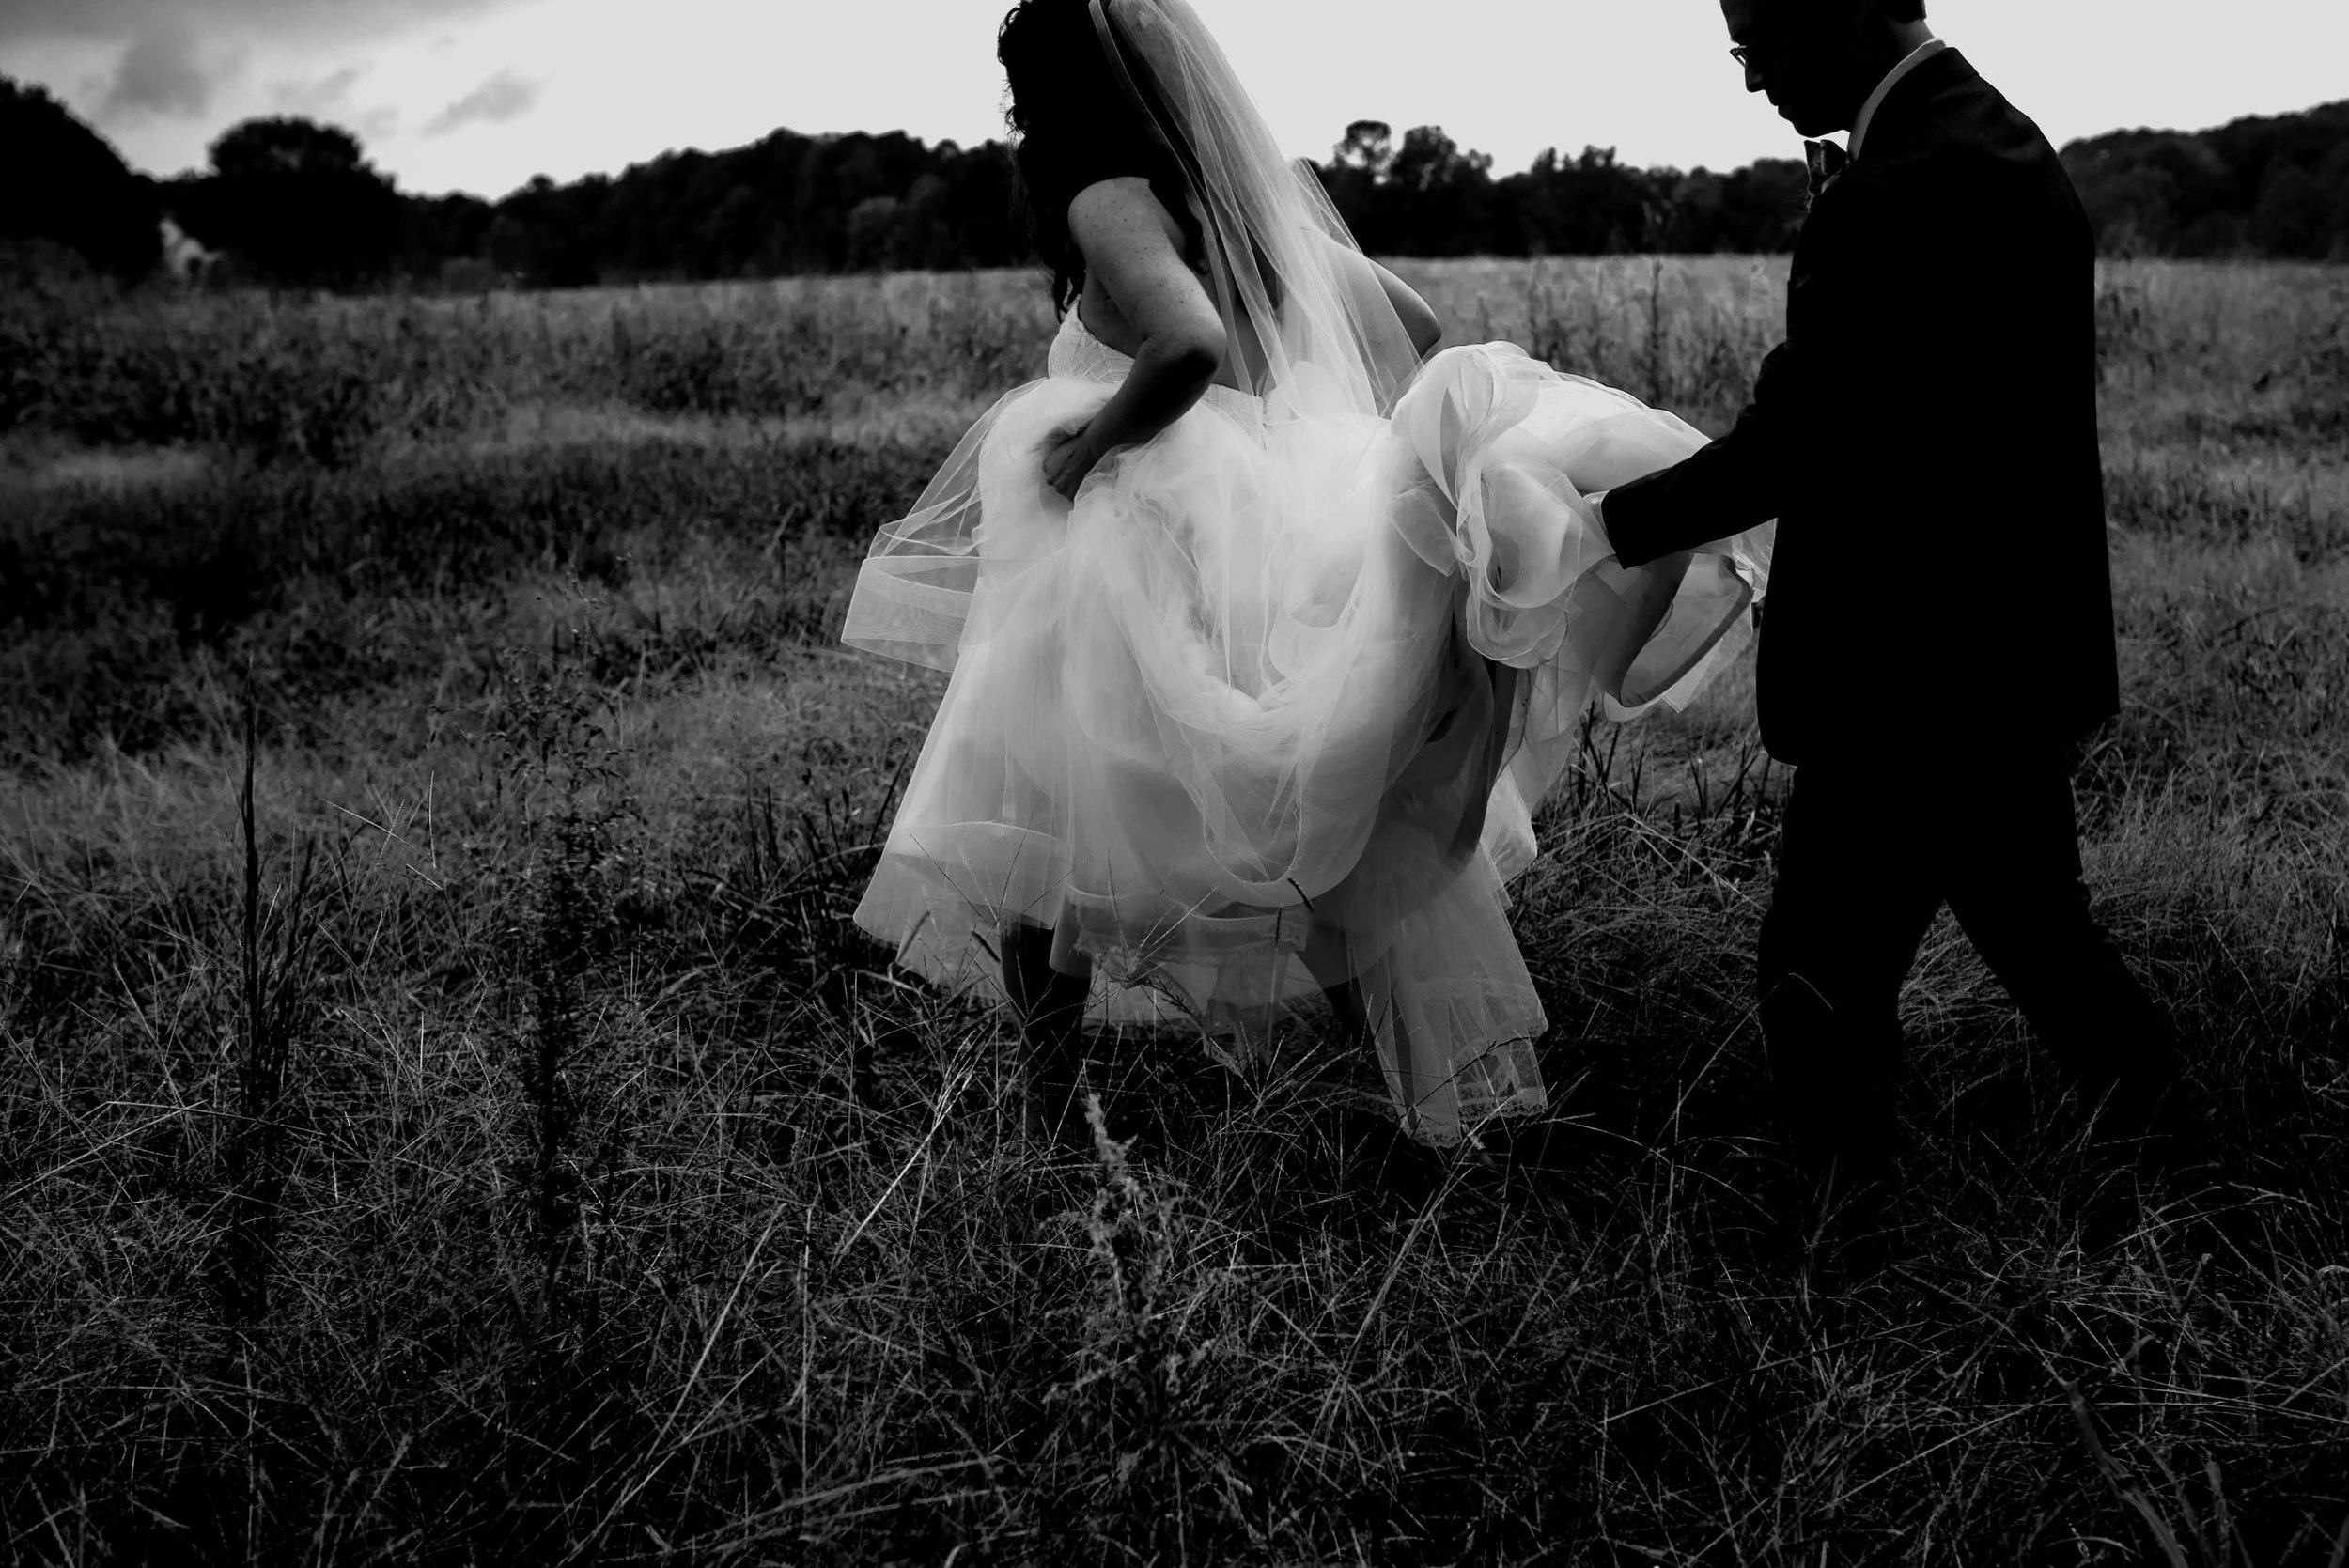 black and white photo of bride and groom walking out of the field during their wedding day